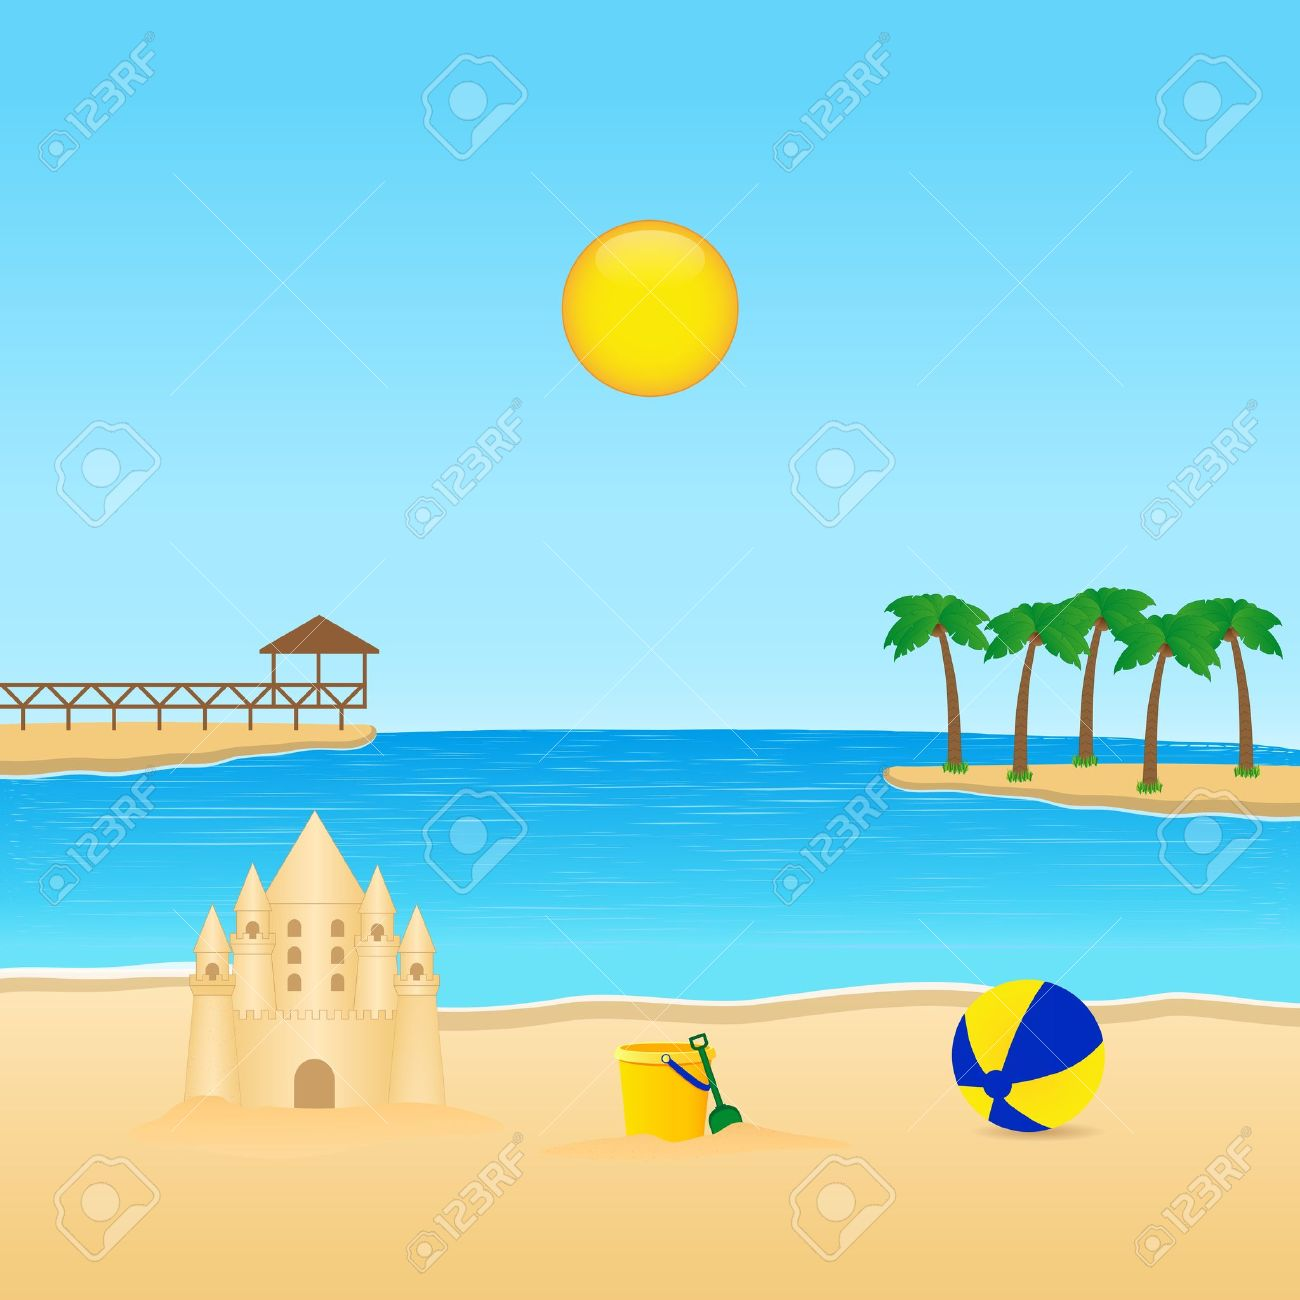 Tropical Landscape With Sandcastle Royalty Free Cliparts, Vectors.